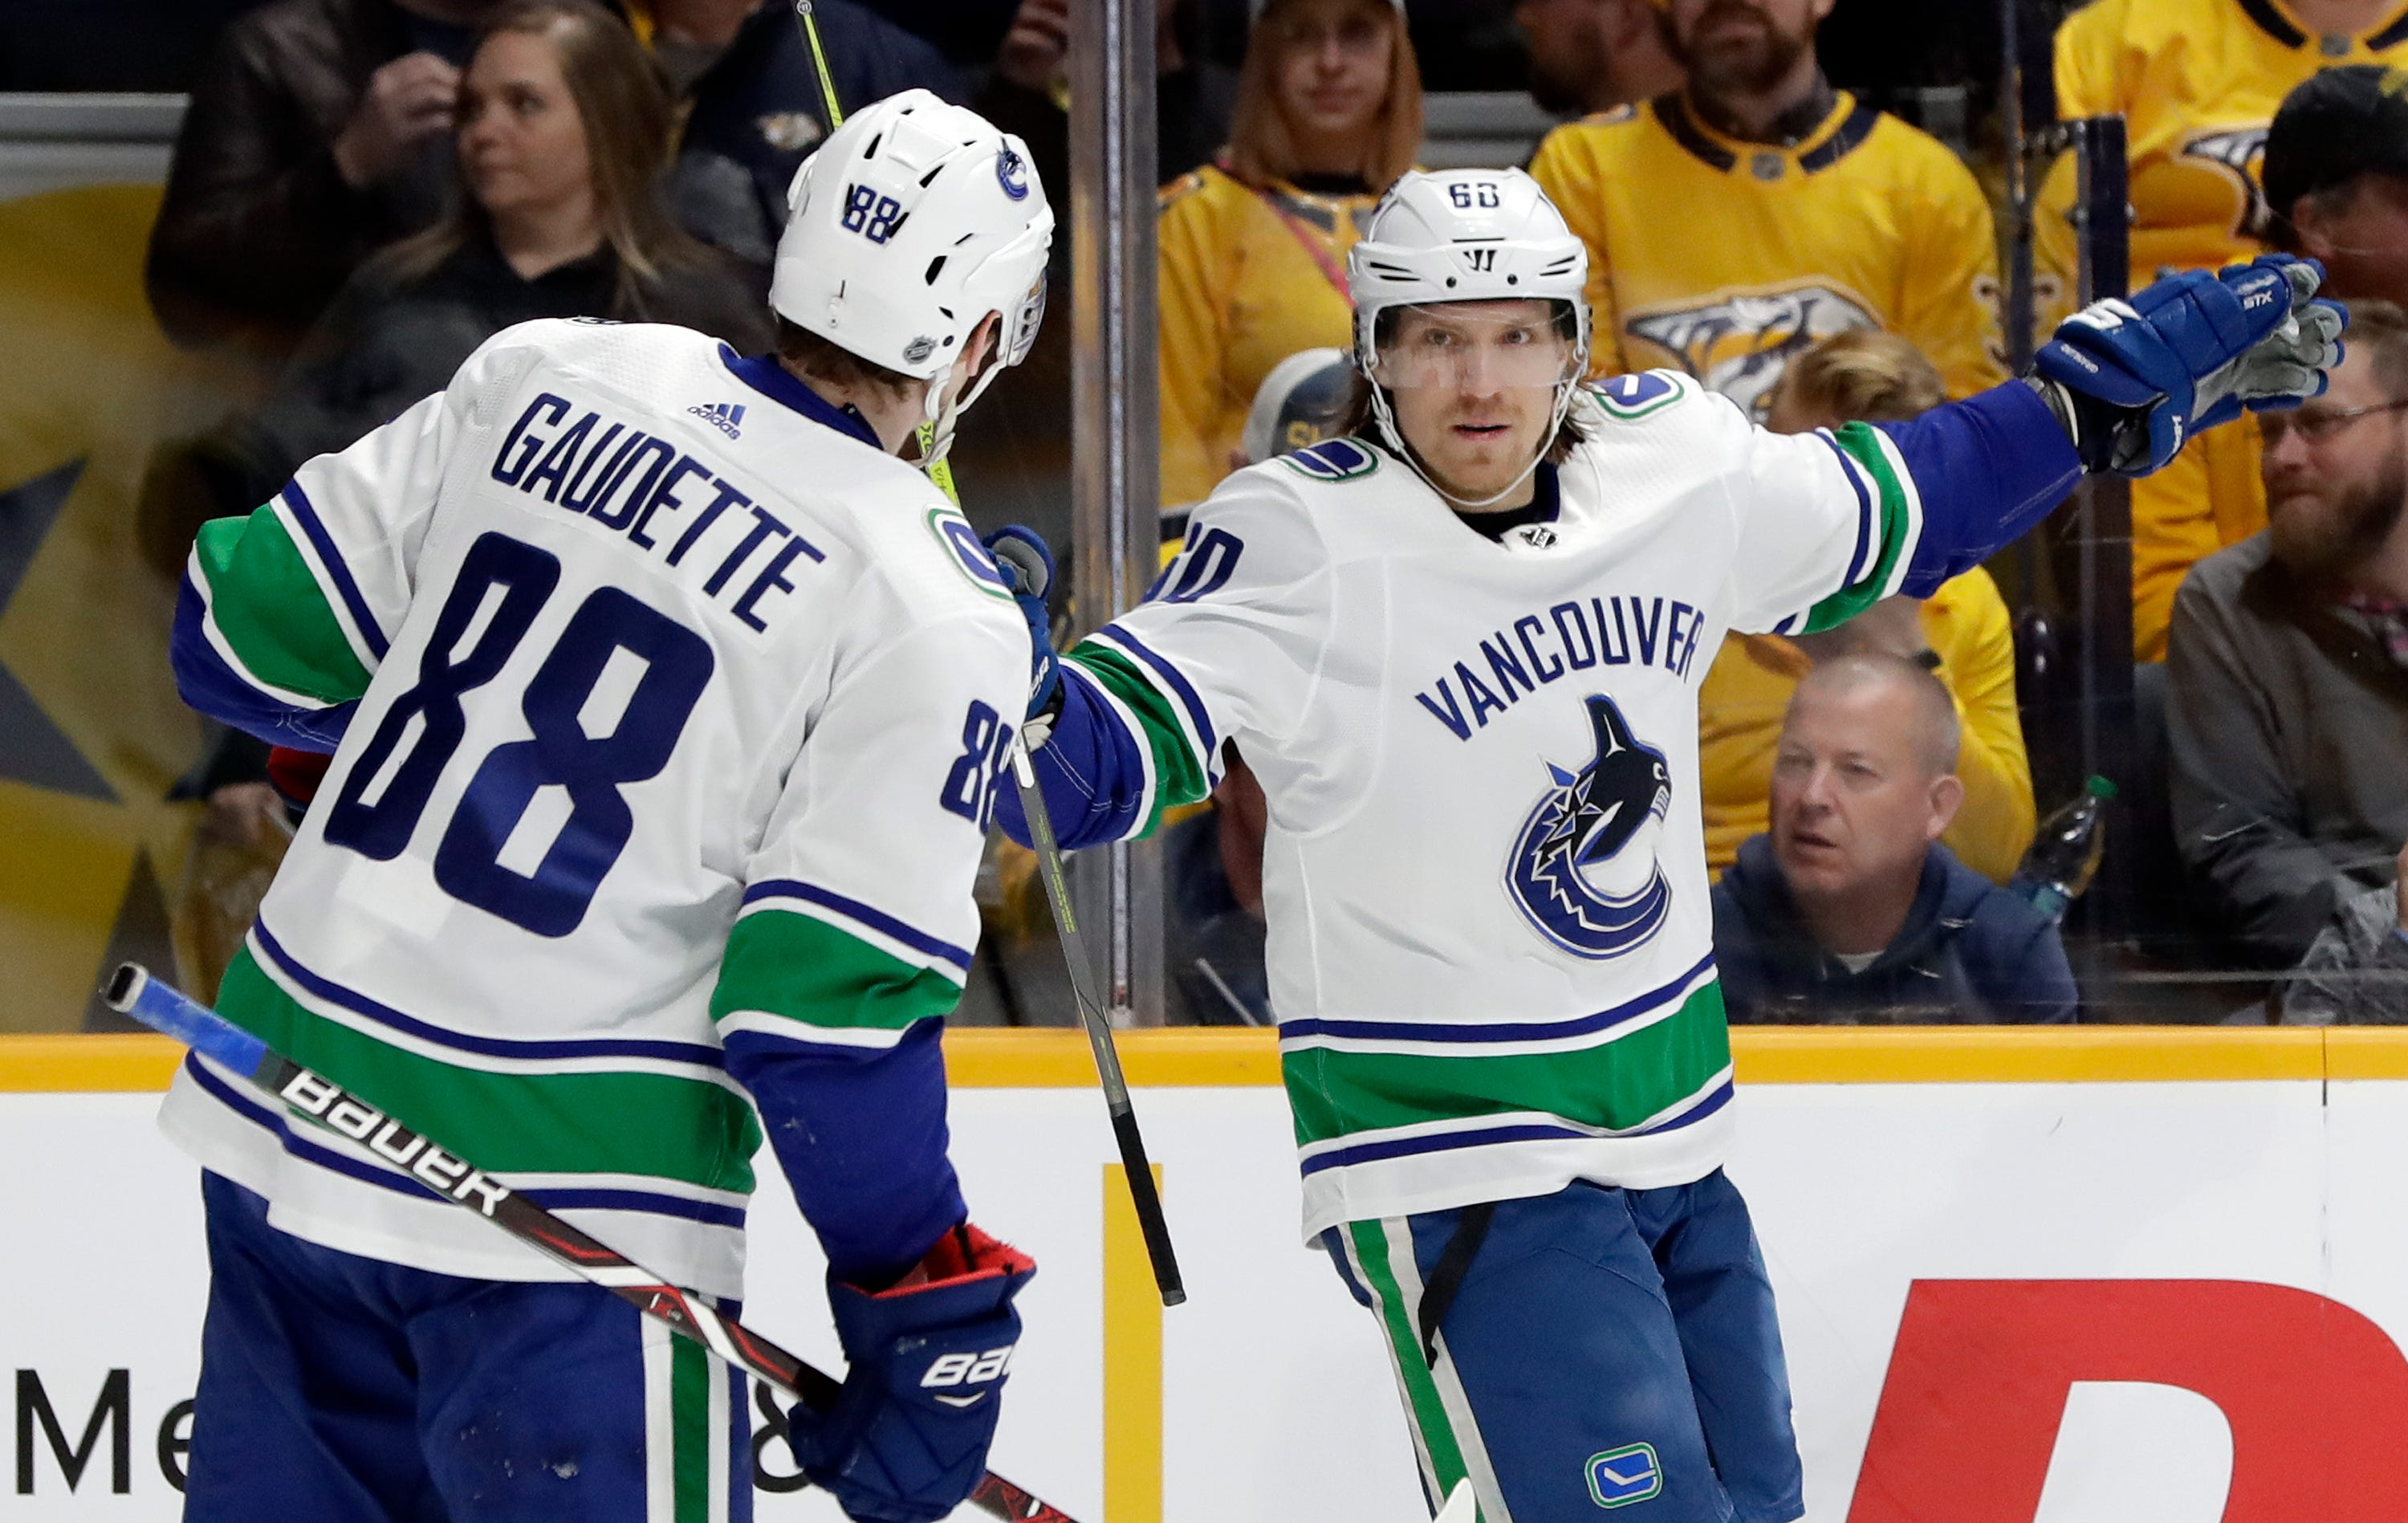 Predators rally with 2 late goals, beat Canucks 3-2